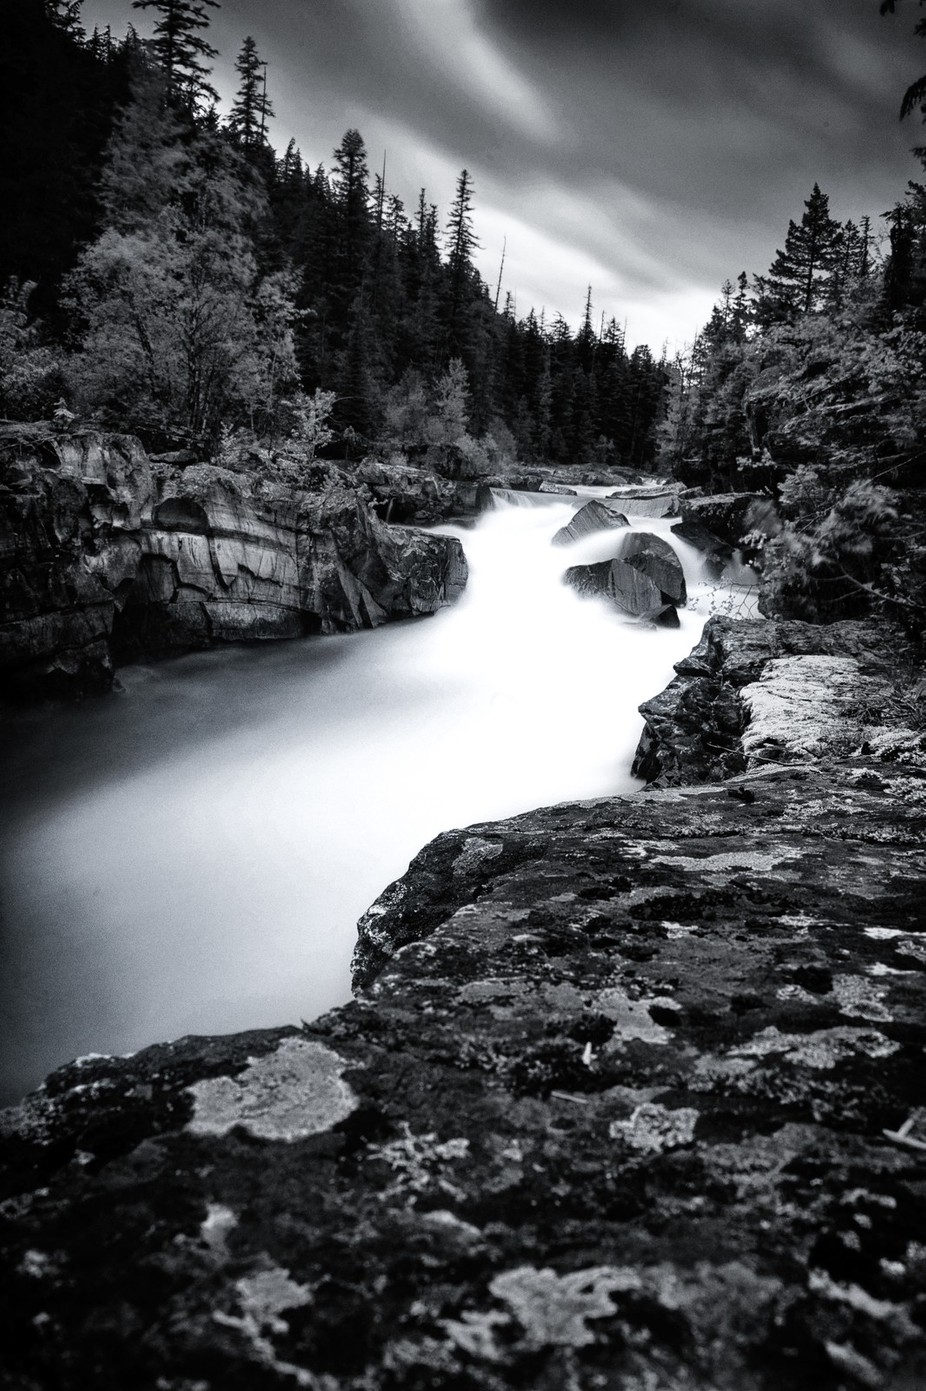 River of Time by sethcoulter - A Black And White World Photo Contest